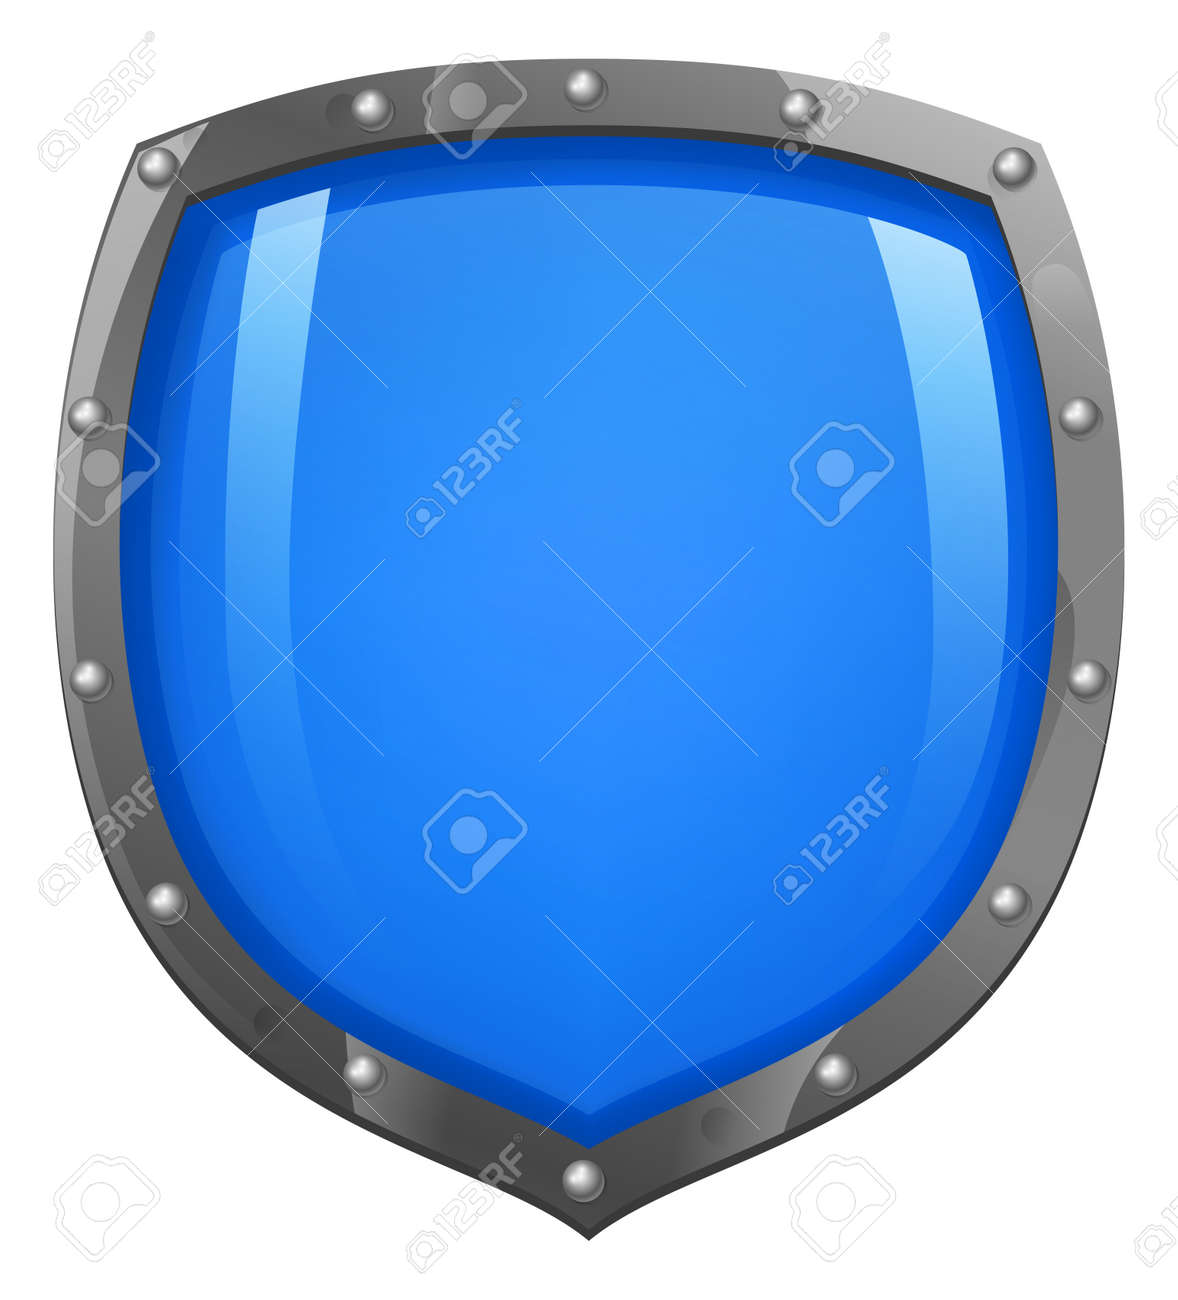 A glossy, shiny blue shield illustration  Concept for defence or security Stock Vector - 12492836